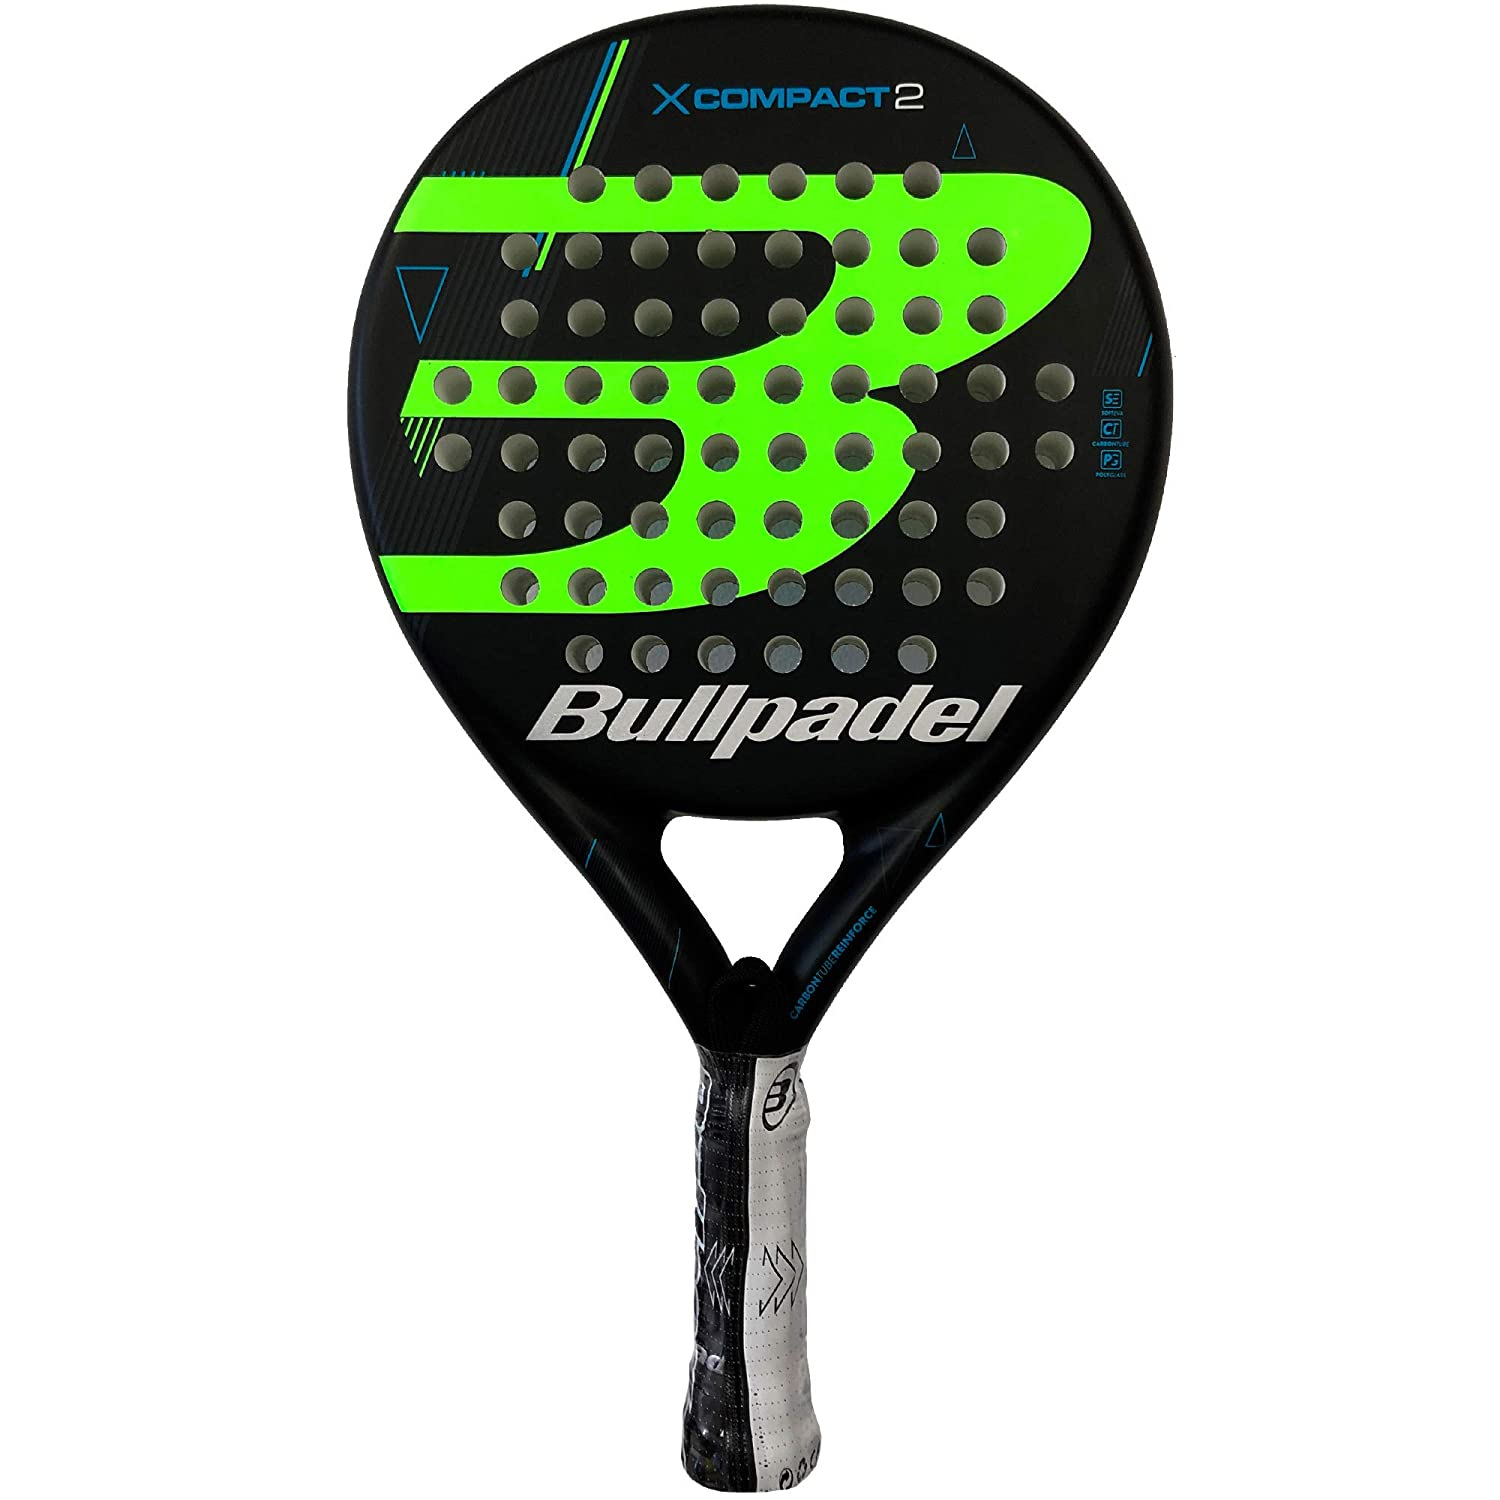 Bullpadel Pala de pádel X-Compact LTD Green: Amazon.es: Deportes y ...